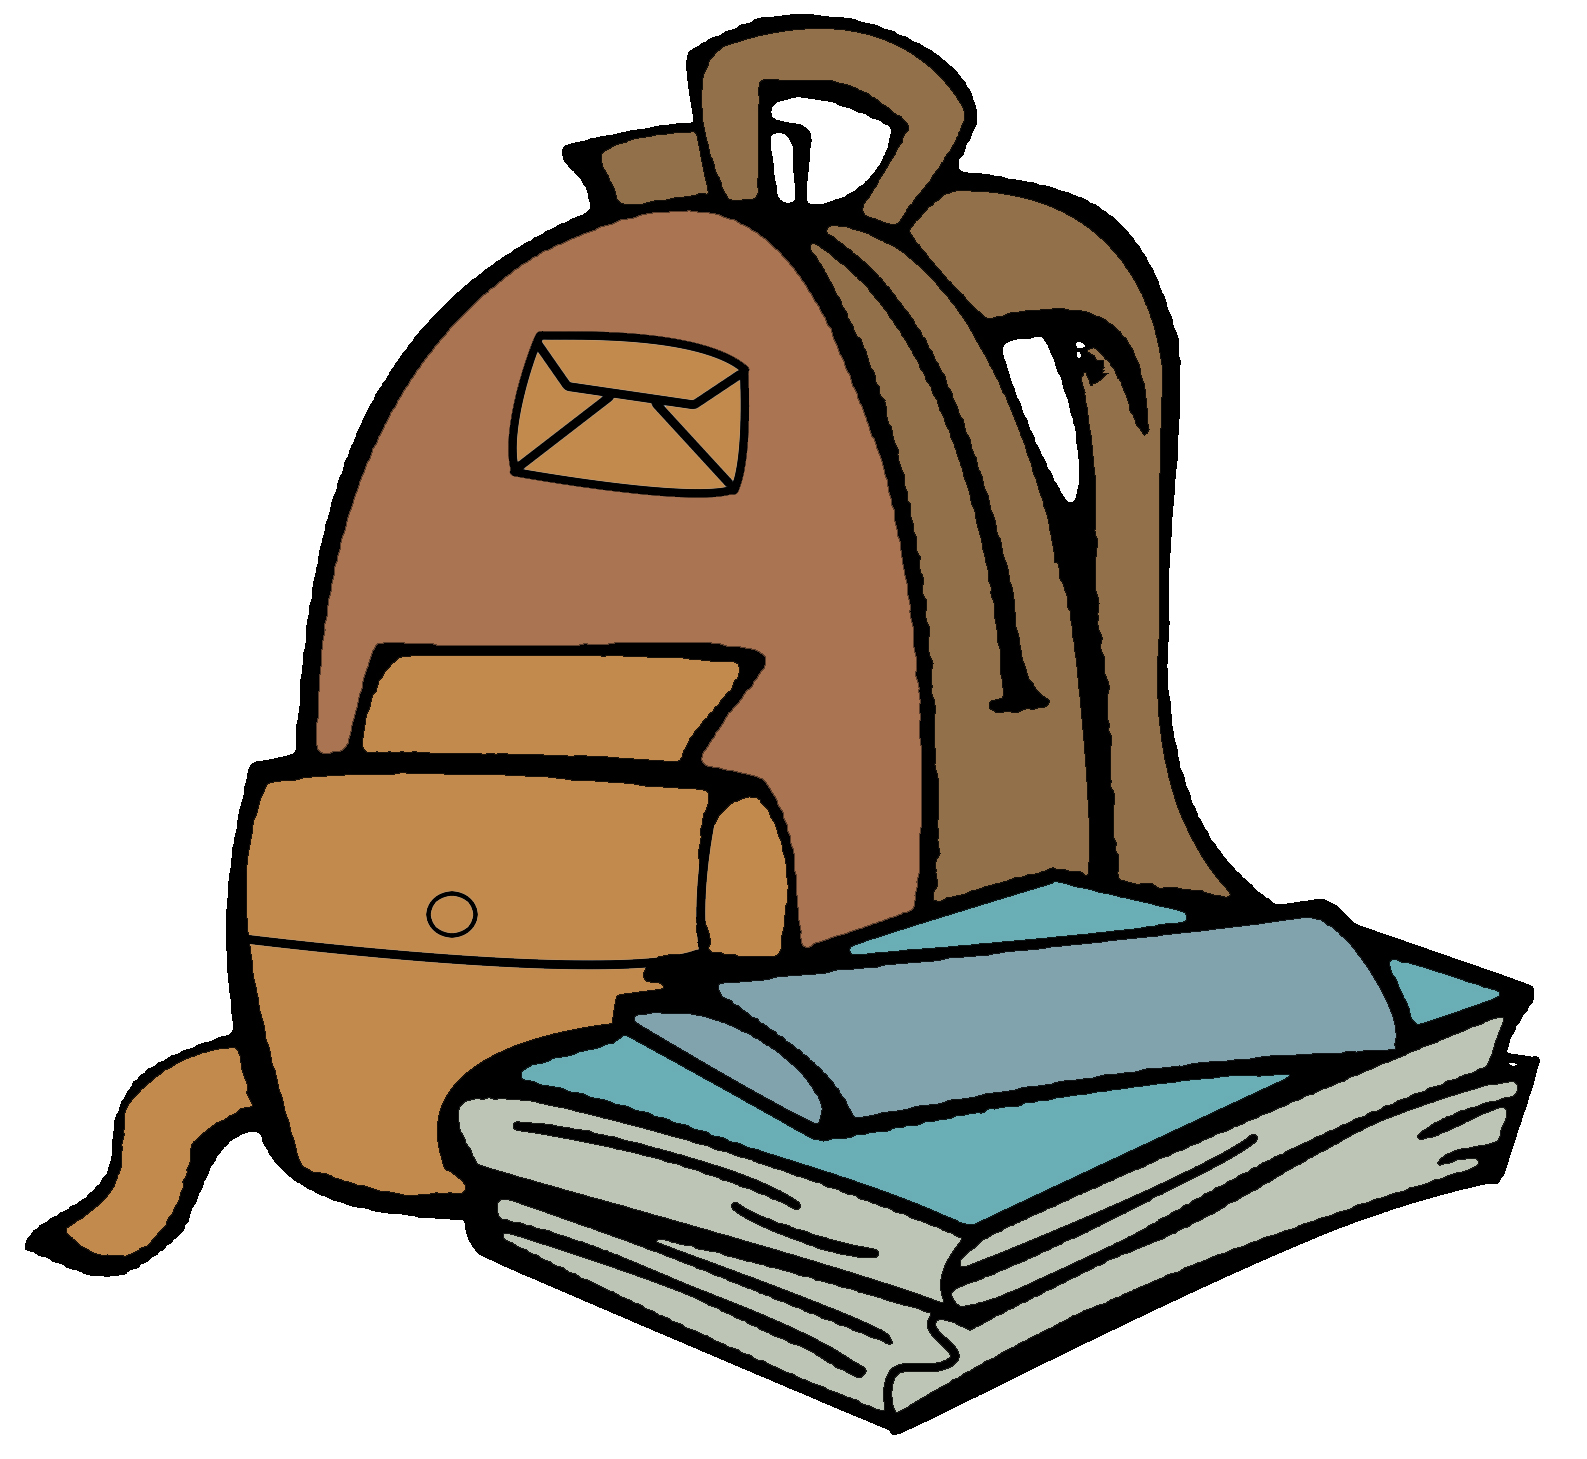 Free backpack clipart clip art images image clipart.